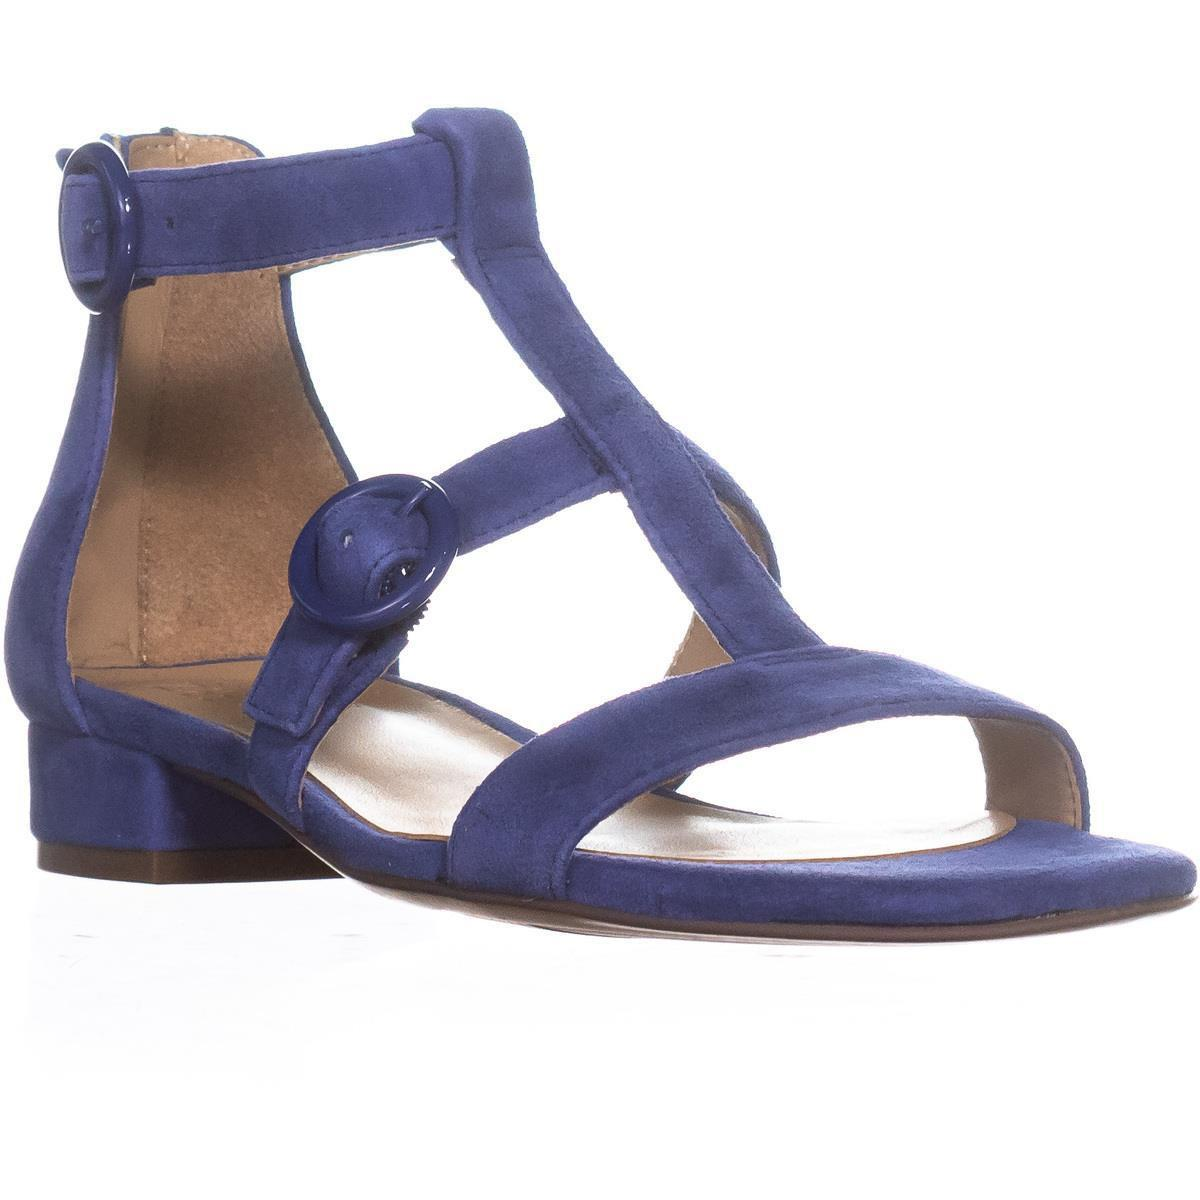 5cb313b932e9 Naturalizer Mabel Flat Ankle Strap Sandals in Blue - Lyst